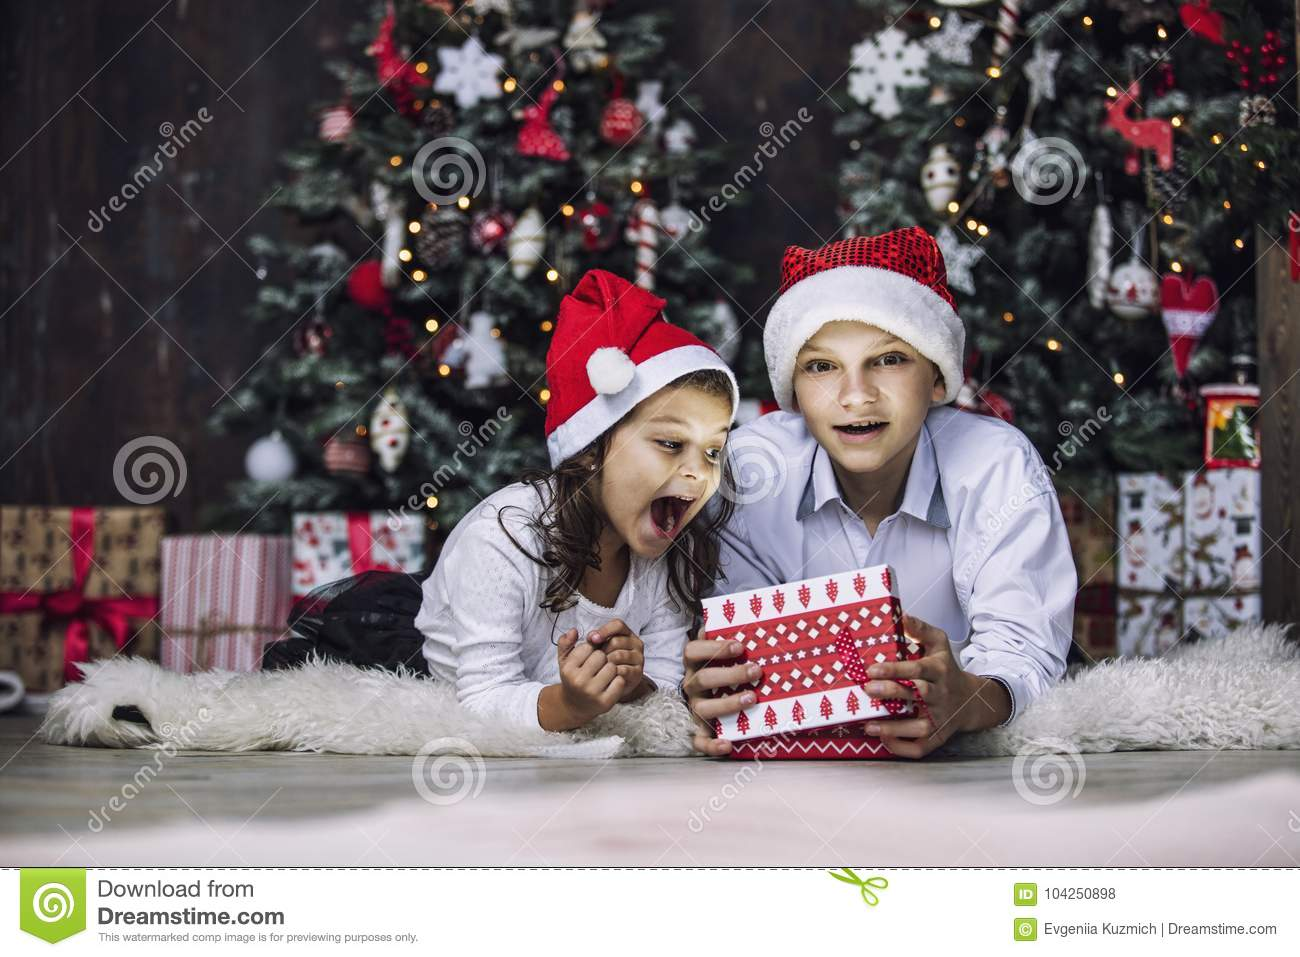 Happy beautiful children boy and girl with gifts to celebrate Christmas and new year together